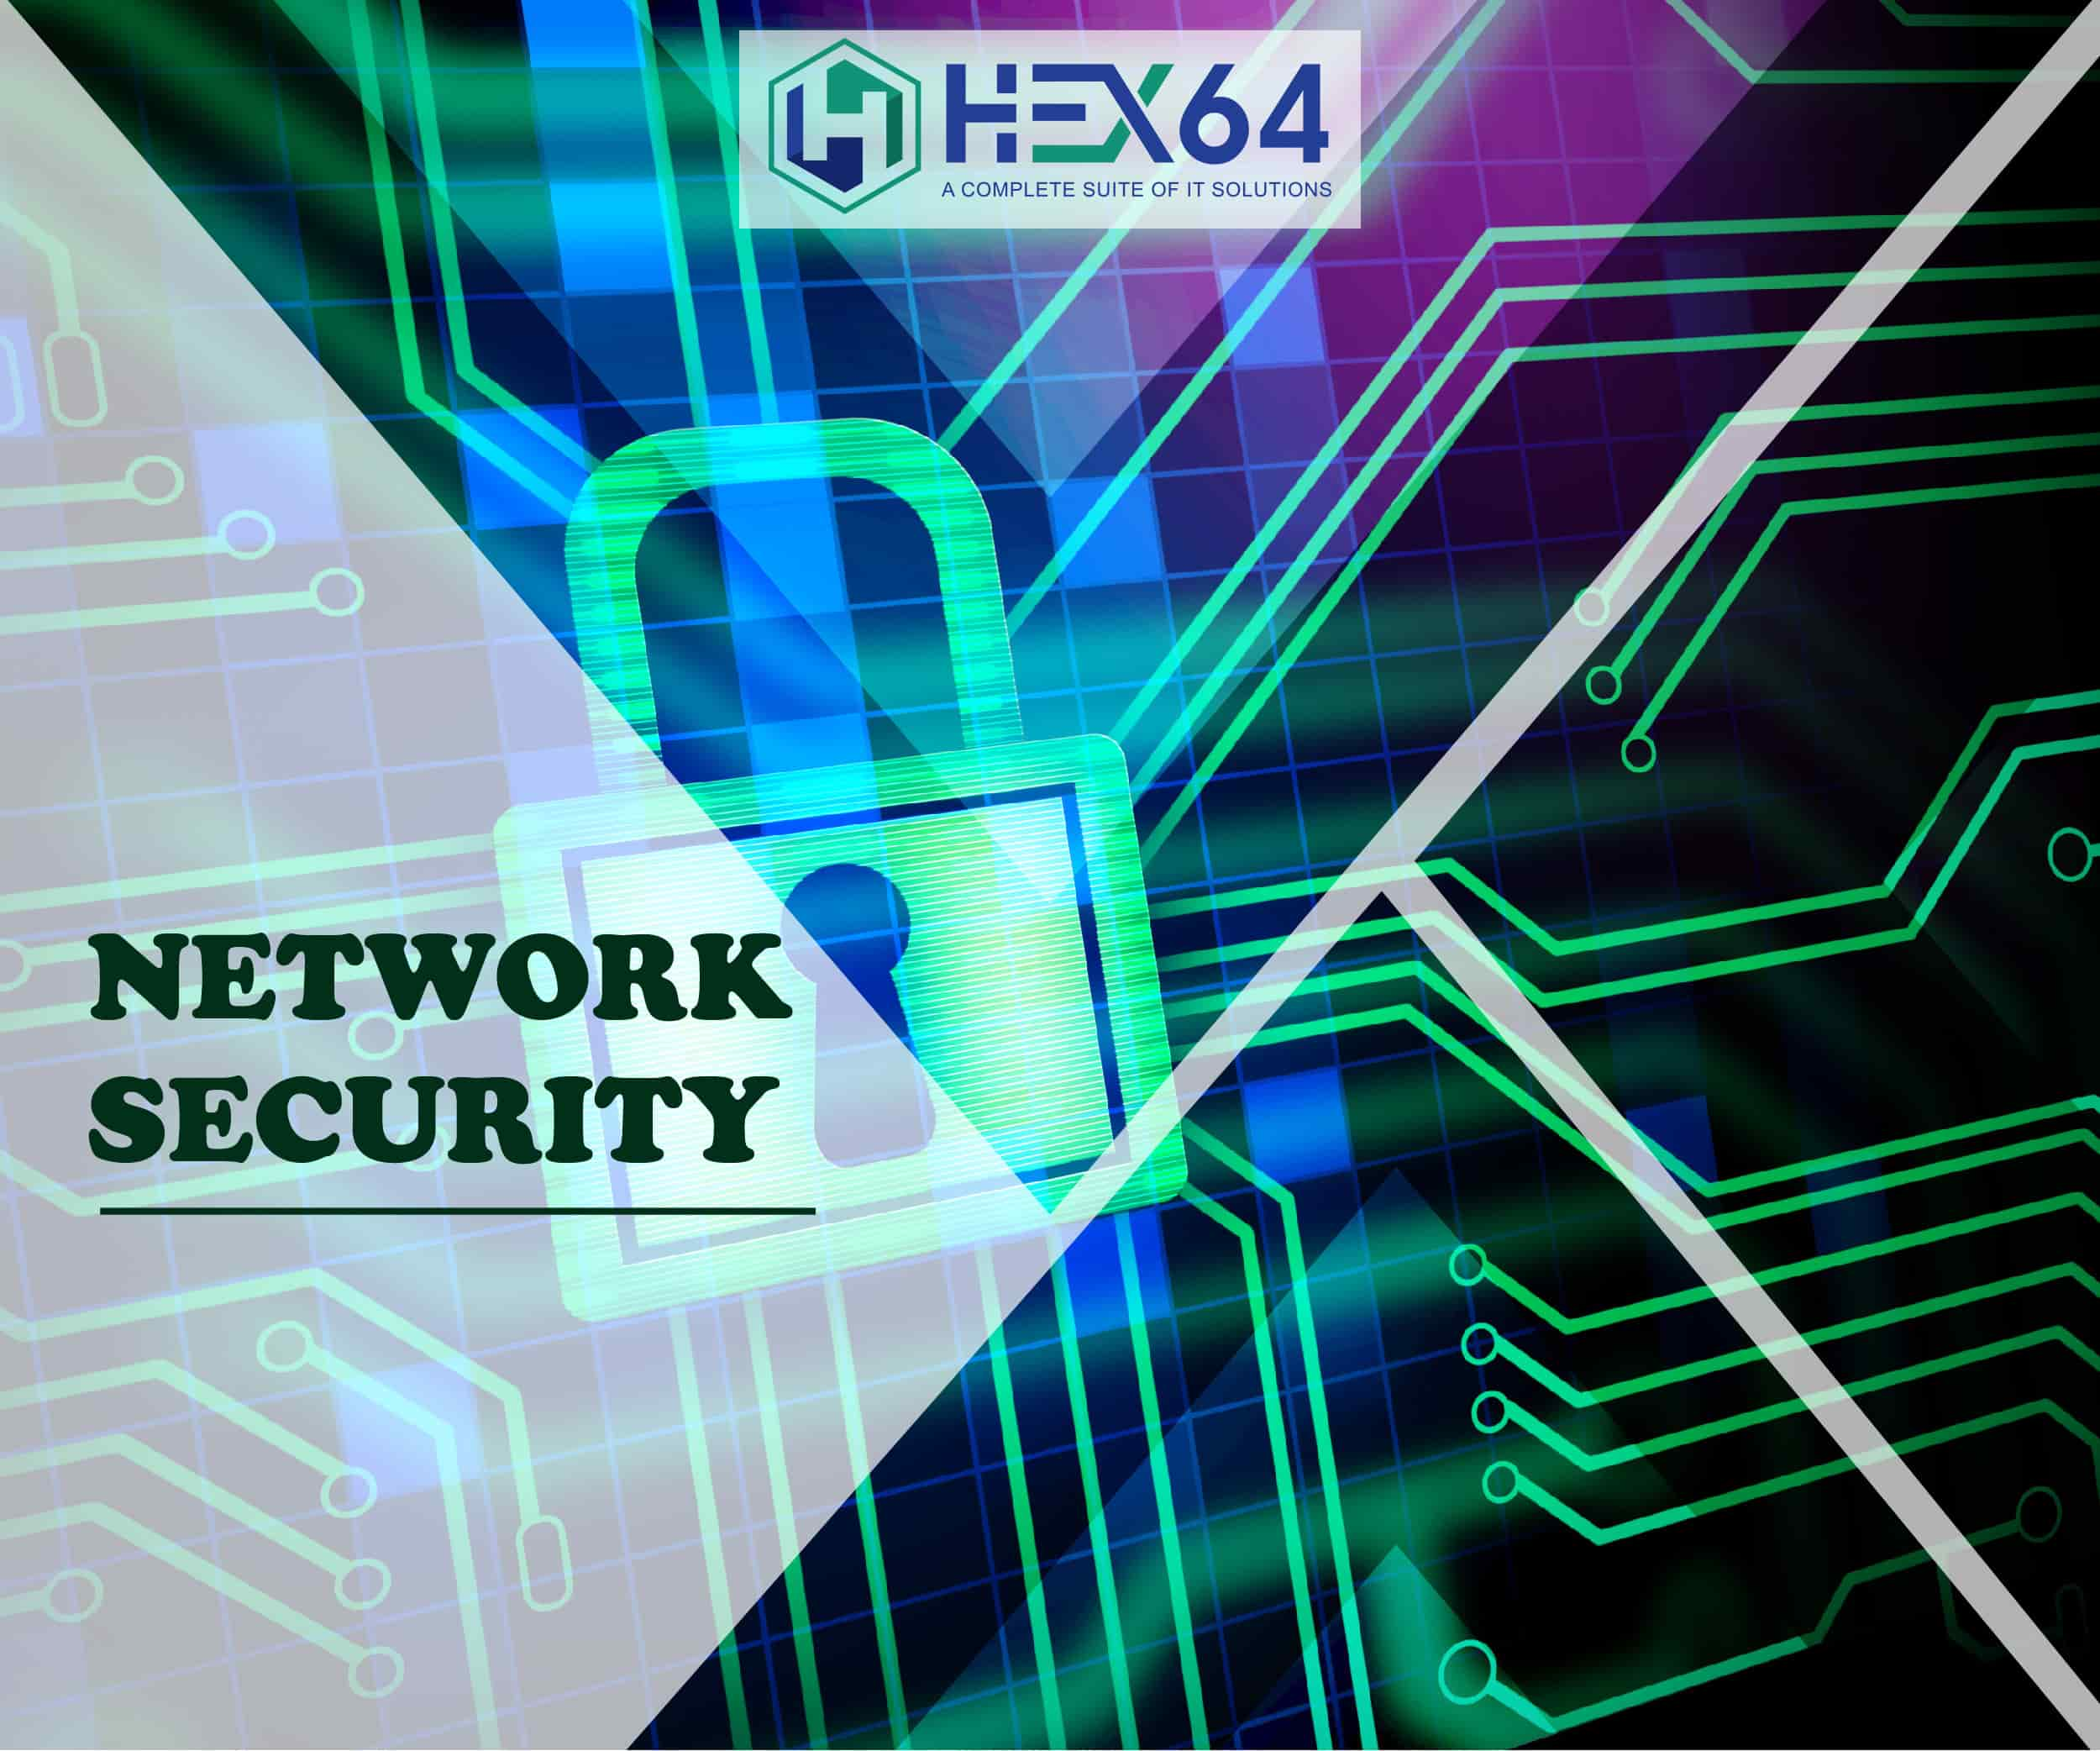 HEX64 network security service provider